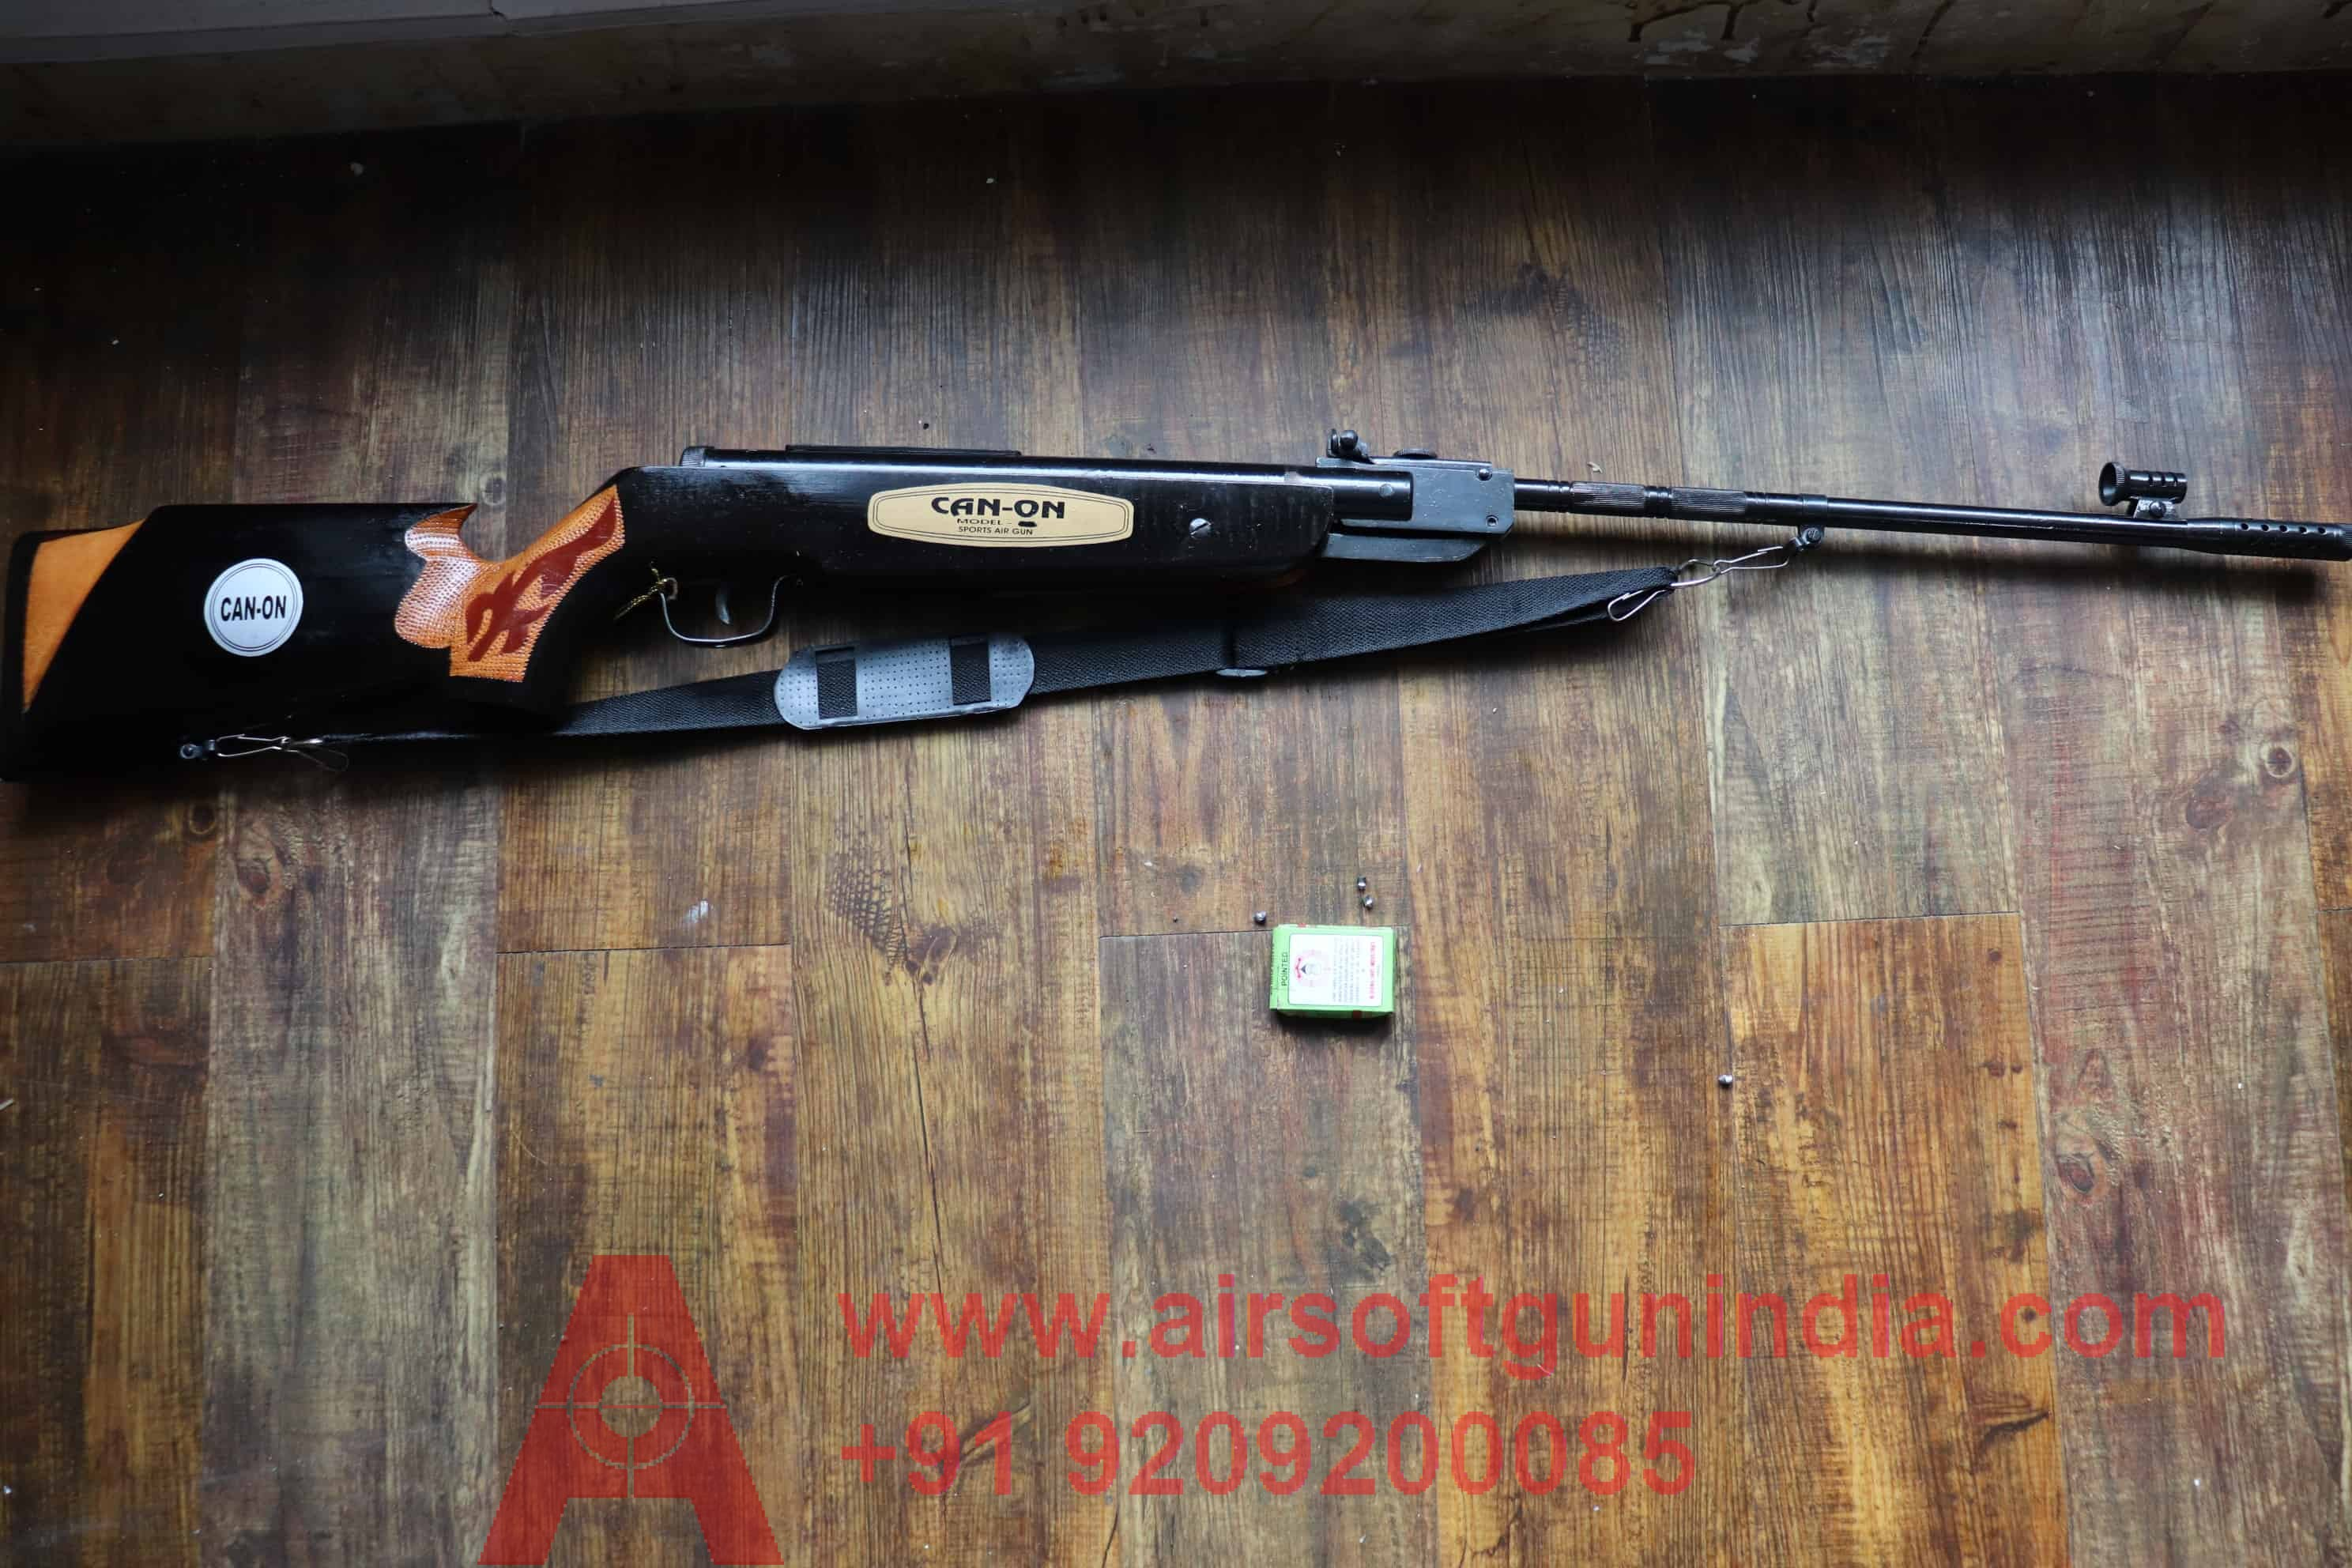 65 SPORTS AIR RIFLE And BATMAN THUNDER PISTOL COMBO BY AIRSOFT GUN INDIA